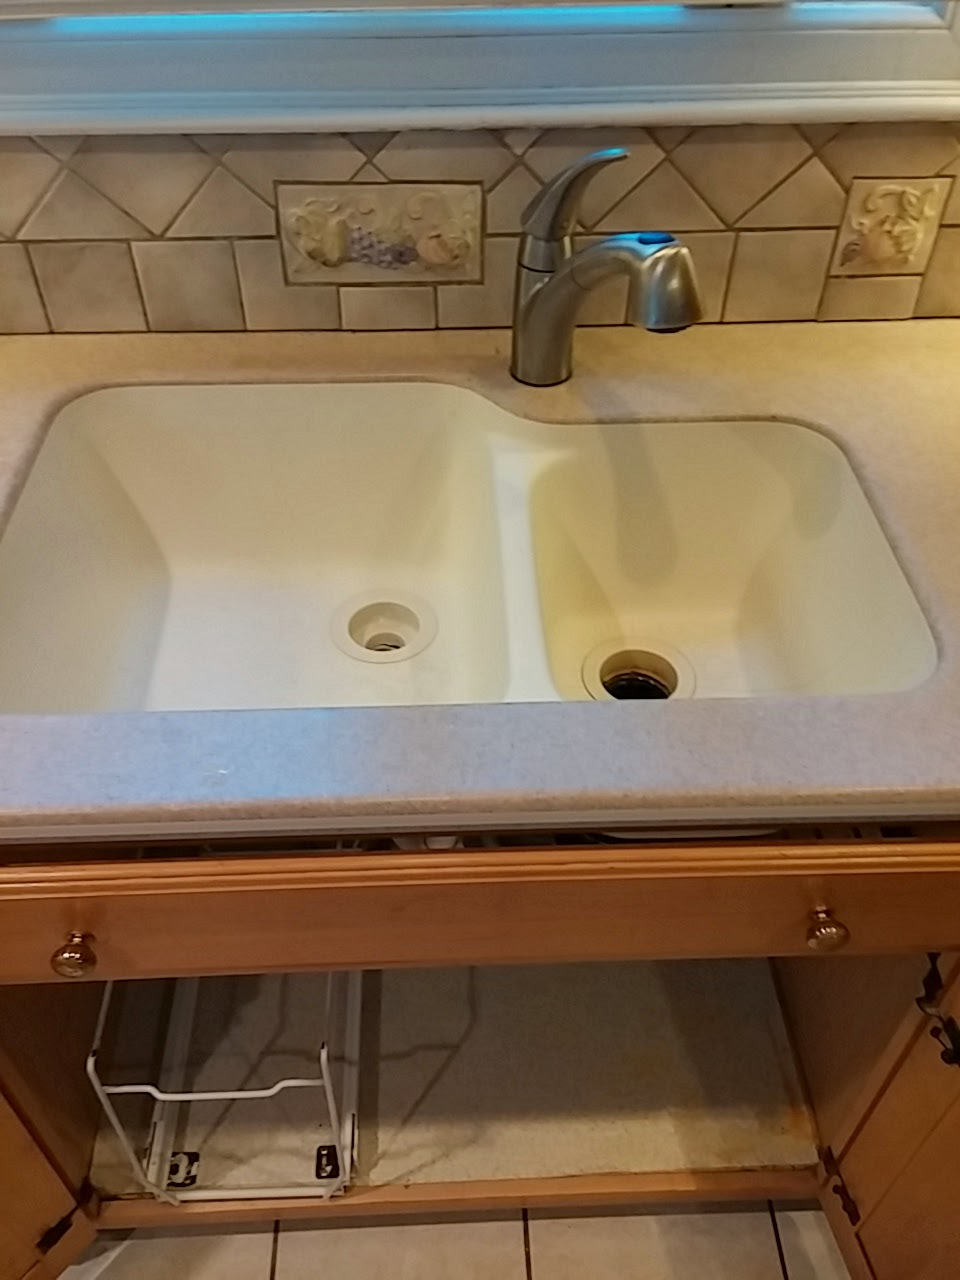 The solid surface and stone countertop repair blog for Stainless steel countertop with integral sink